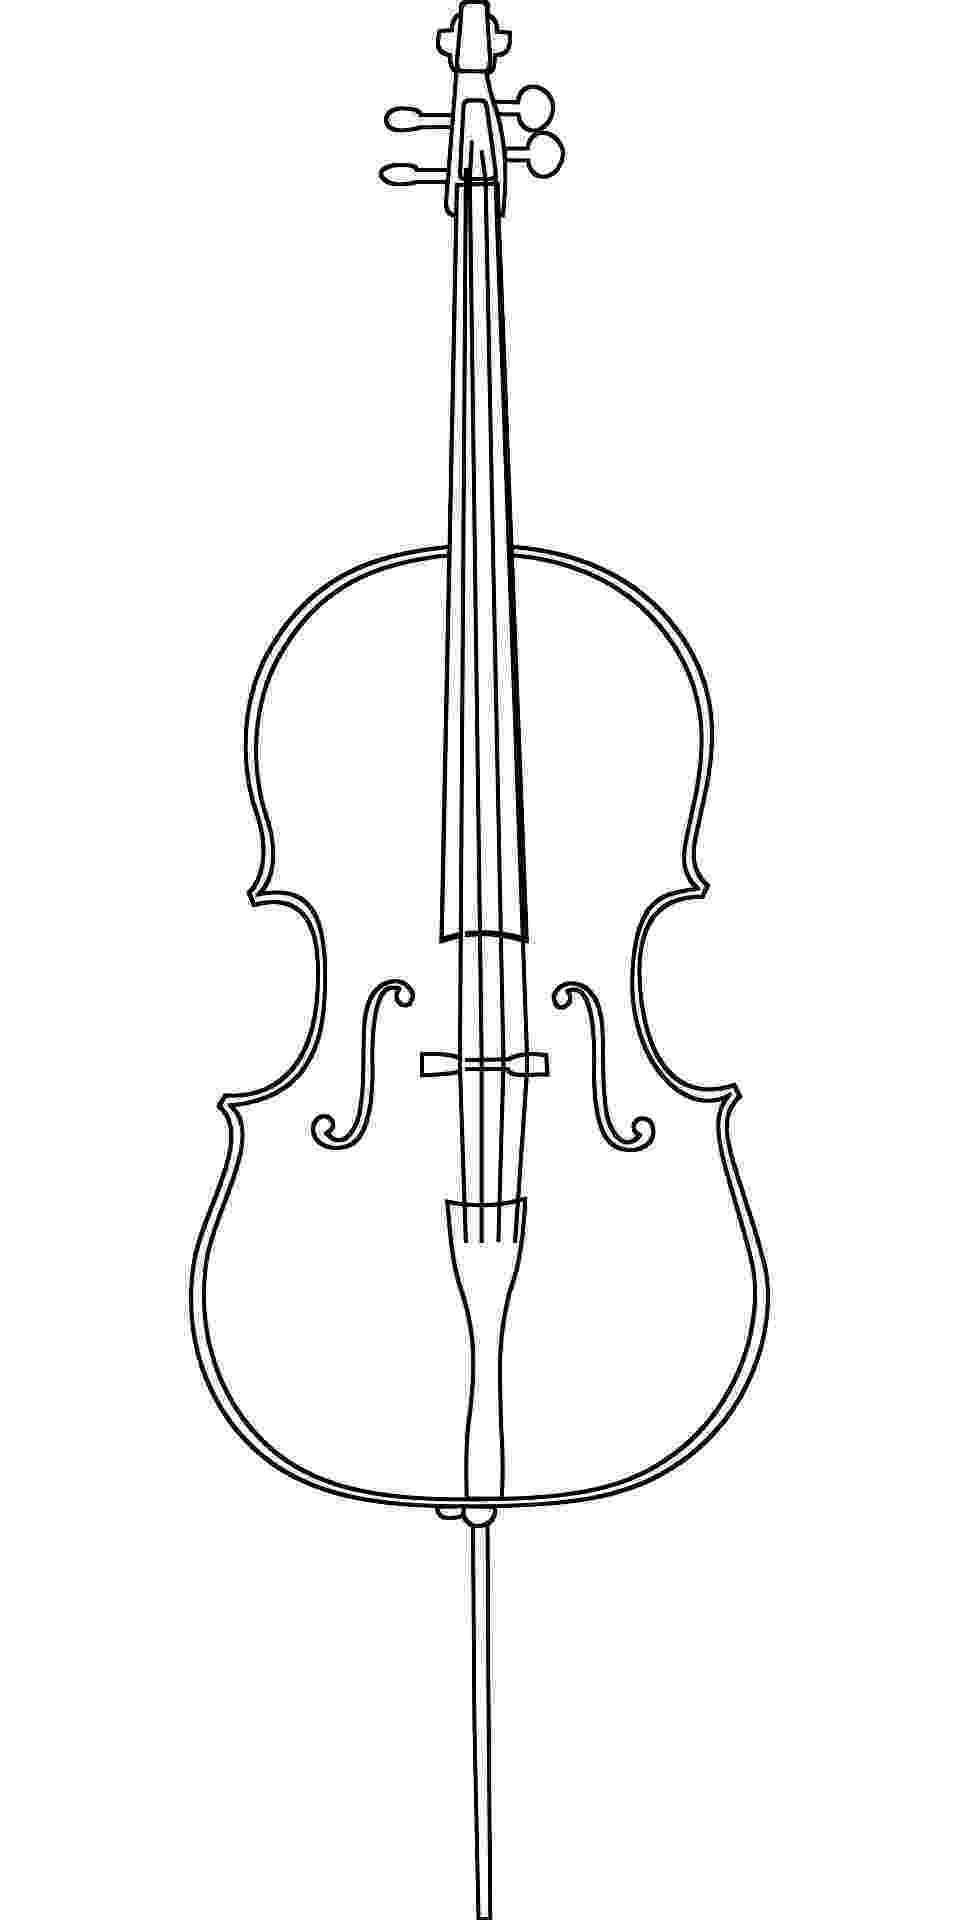 cello coloring page eeyore playing cello coloring page h m coloring pages cello coloring page